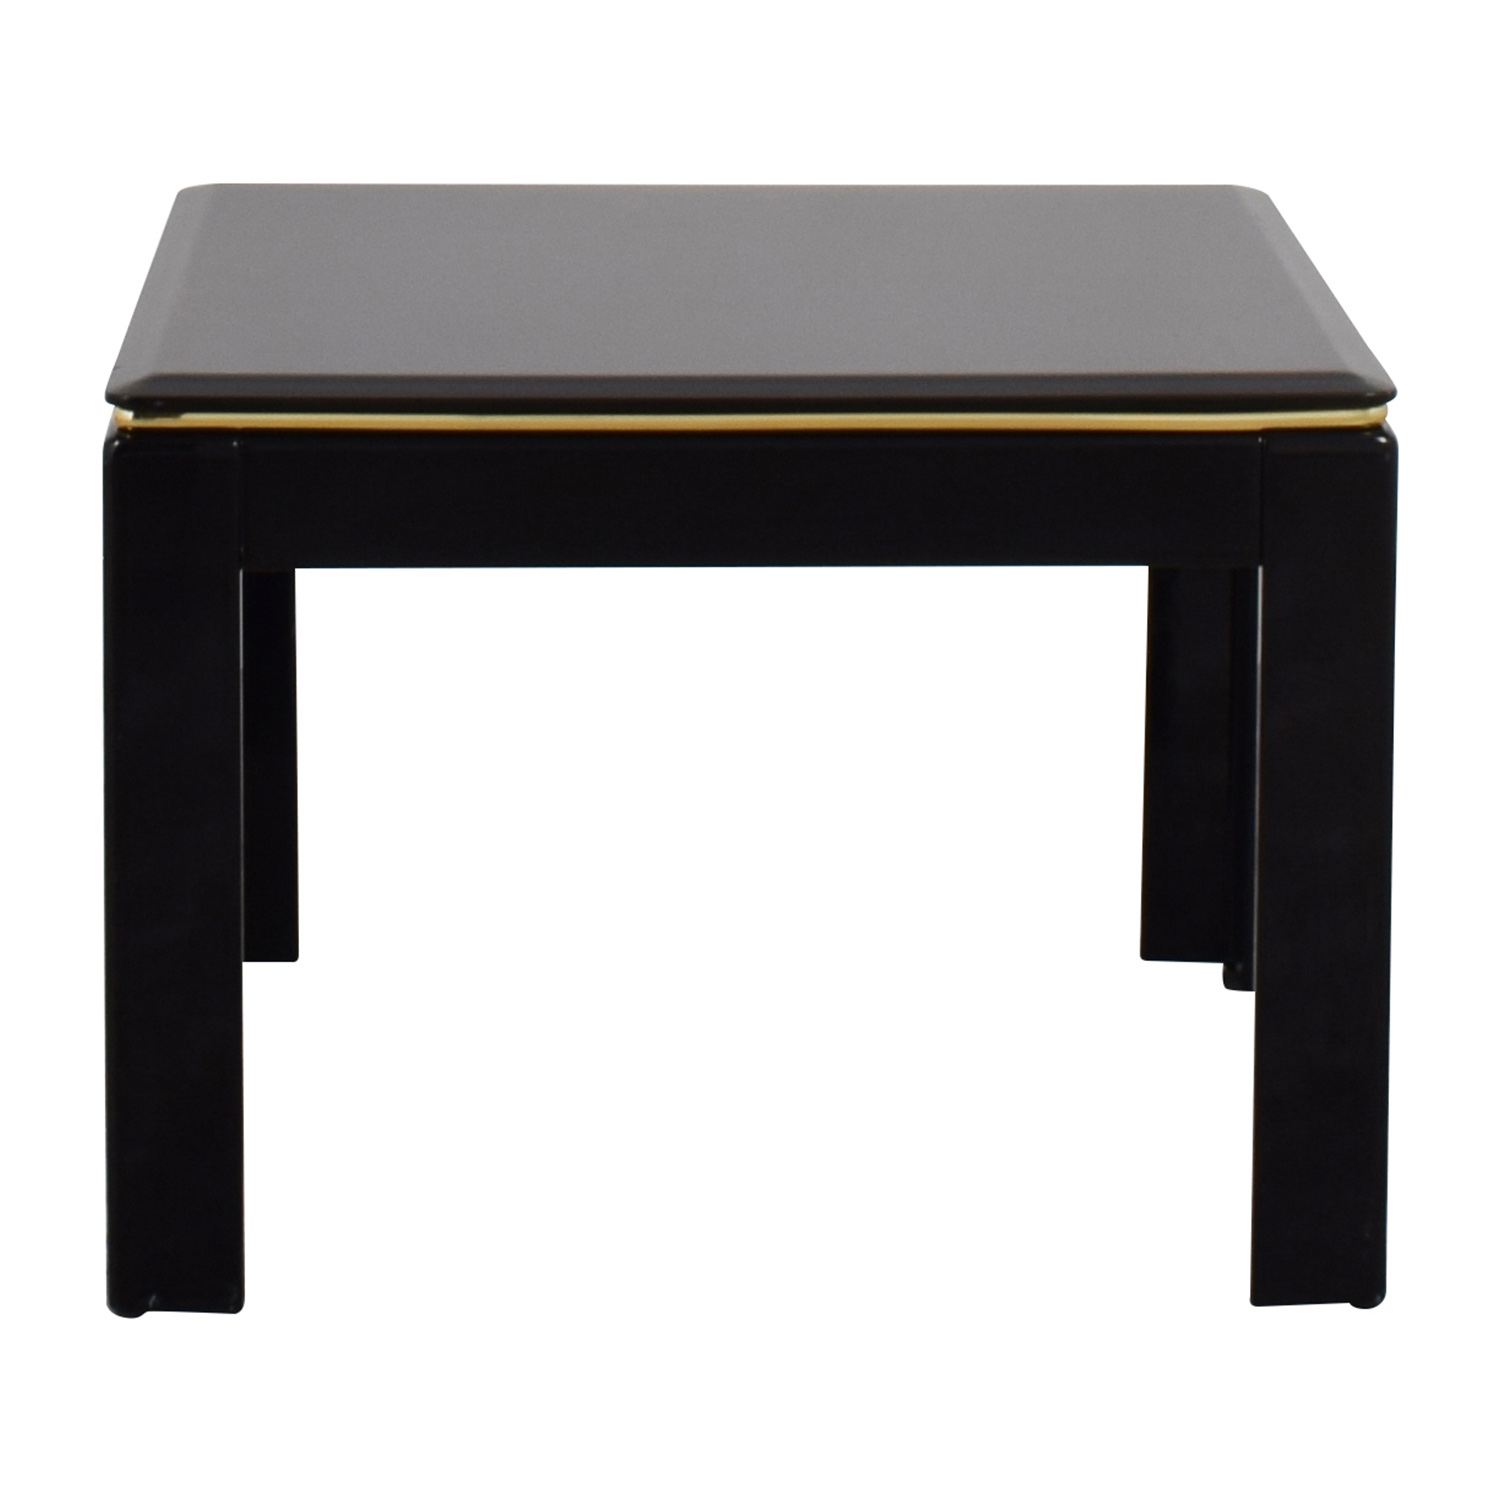 Delightful Black Lacquer End Table ...